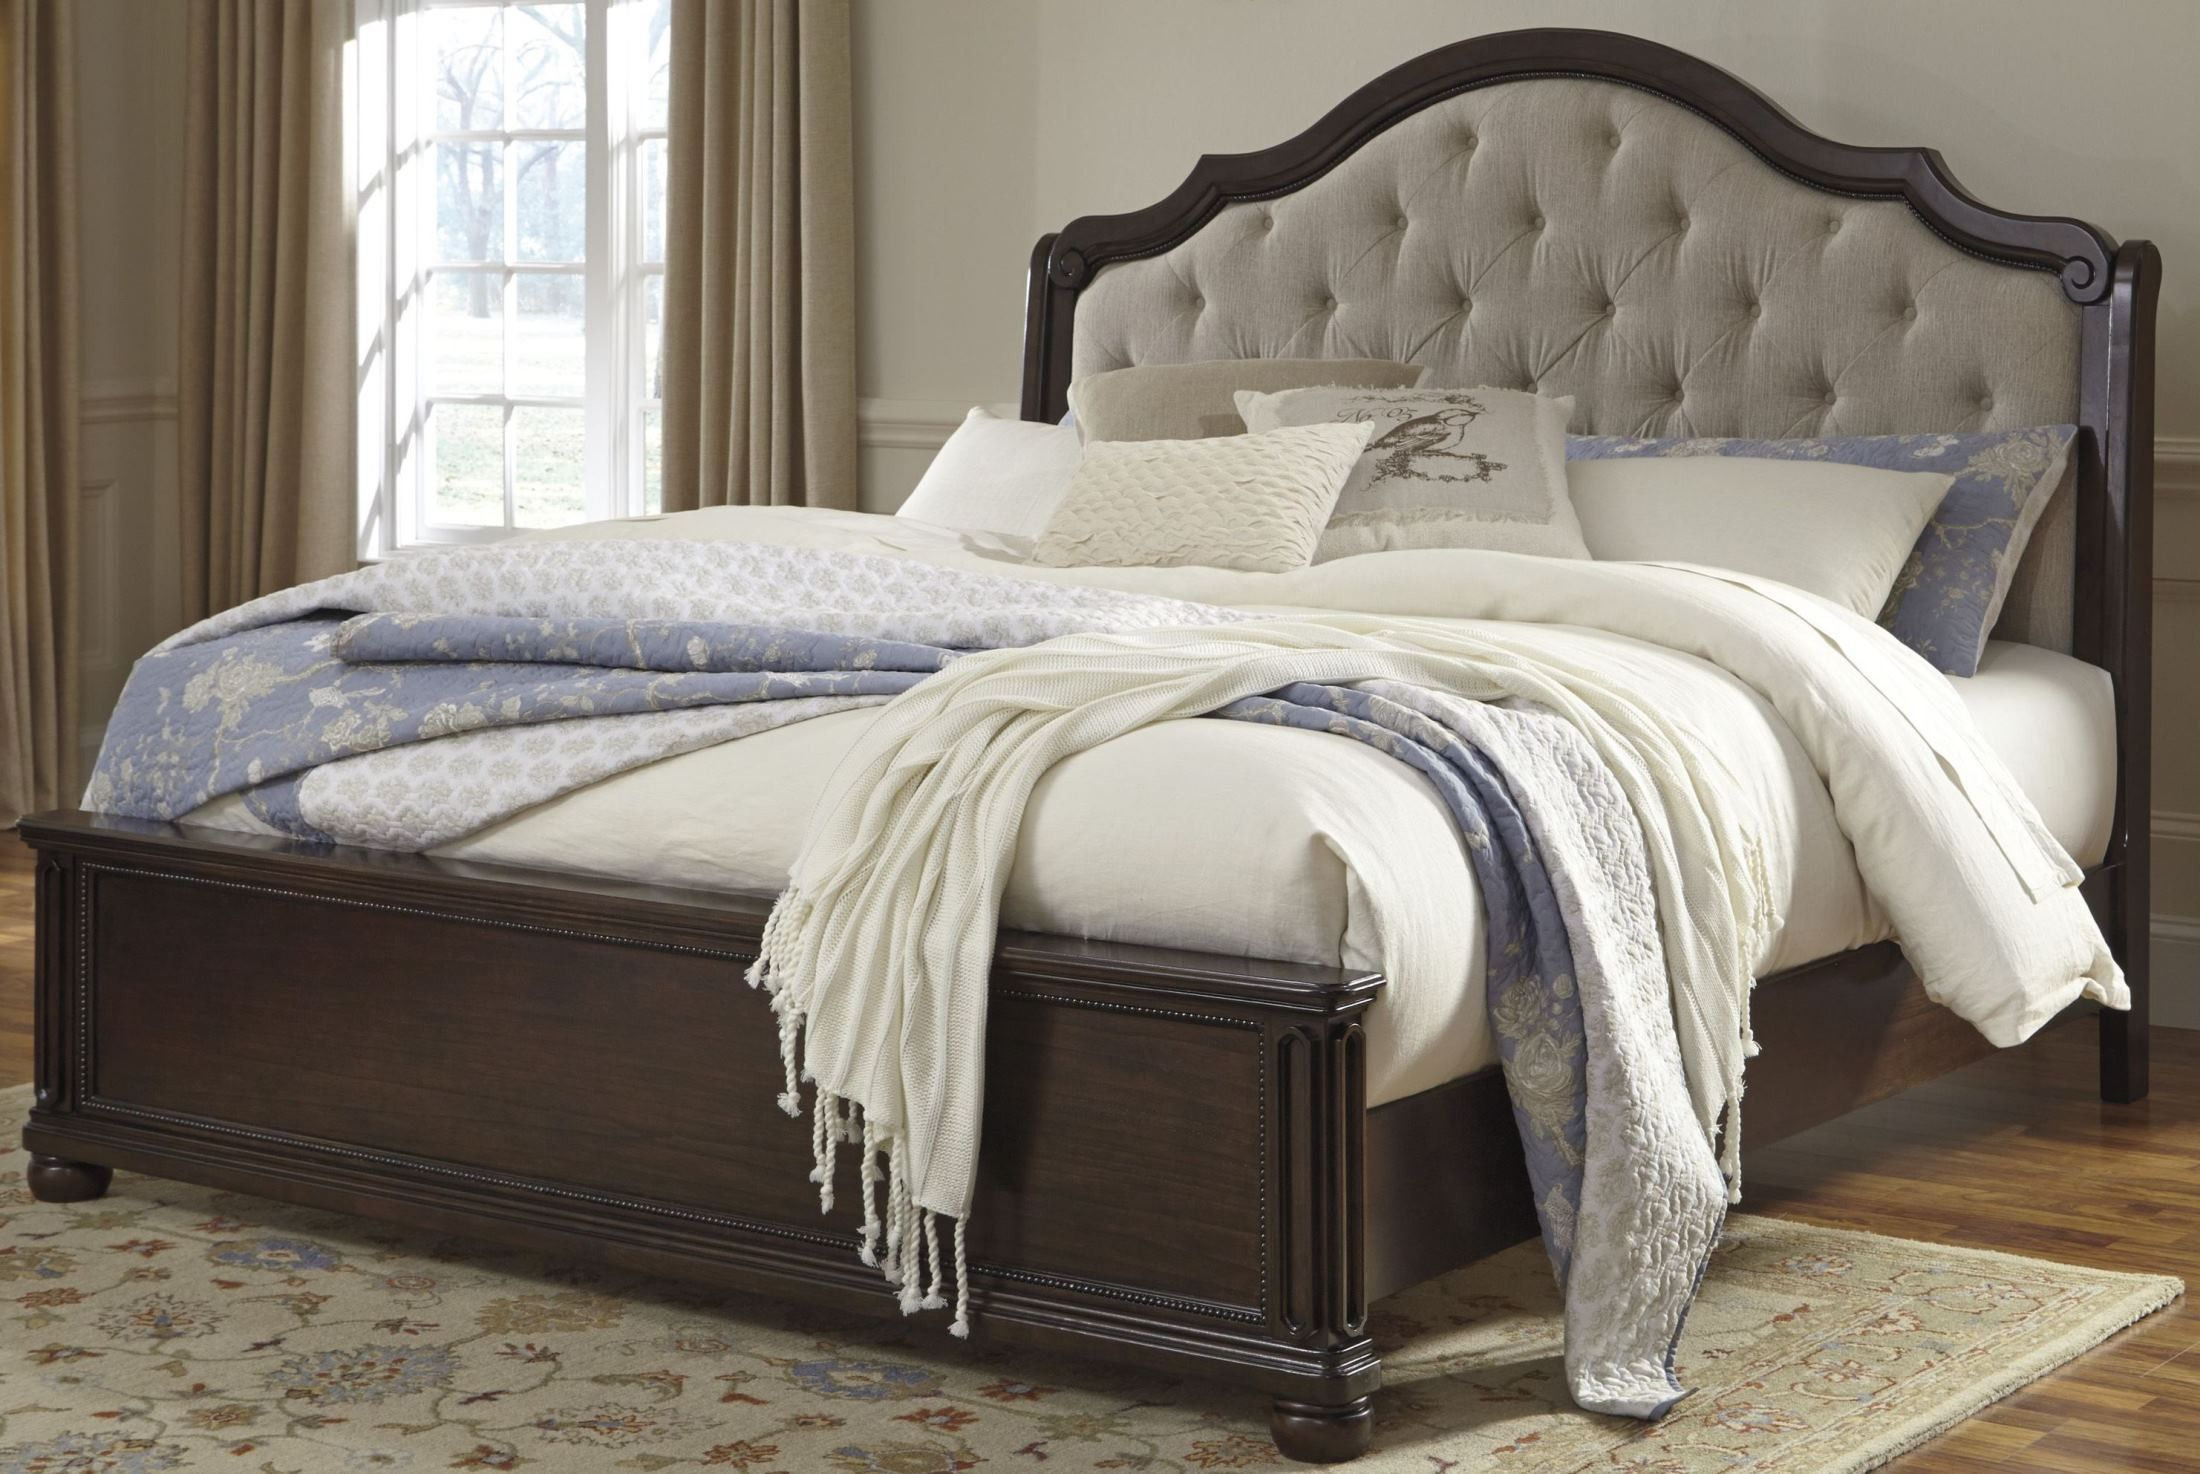 Moluxy Dark Brown King Upholstered Sleigh Bed B596 56 58 97 Ashley Modern Murphy Beds Upholstered Sleigh Bed Bedroom Set